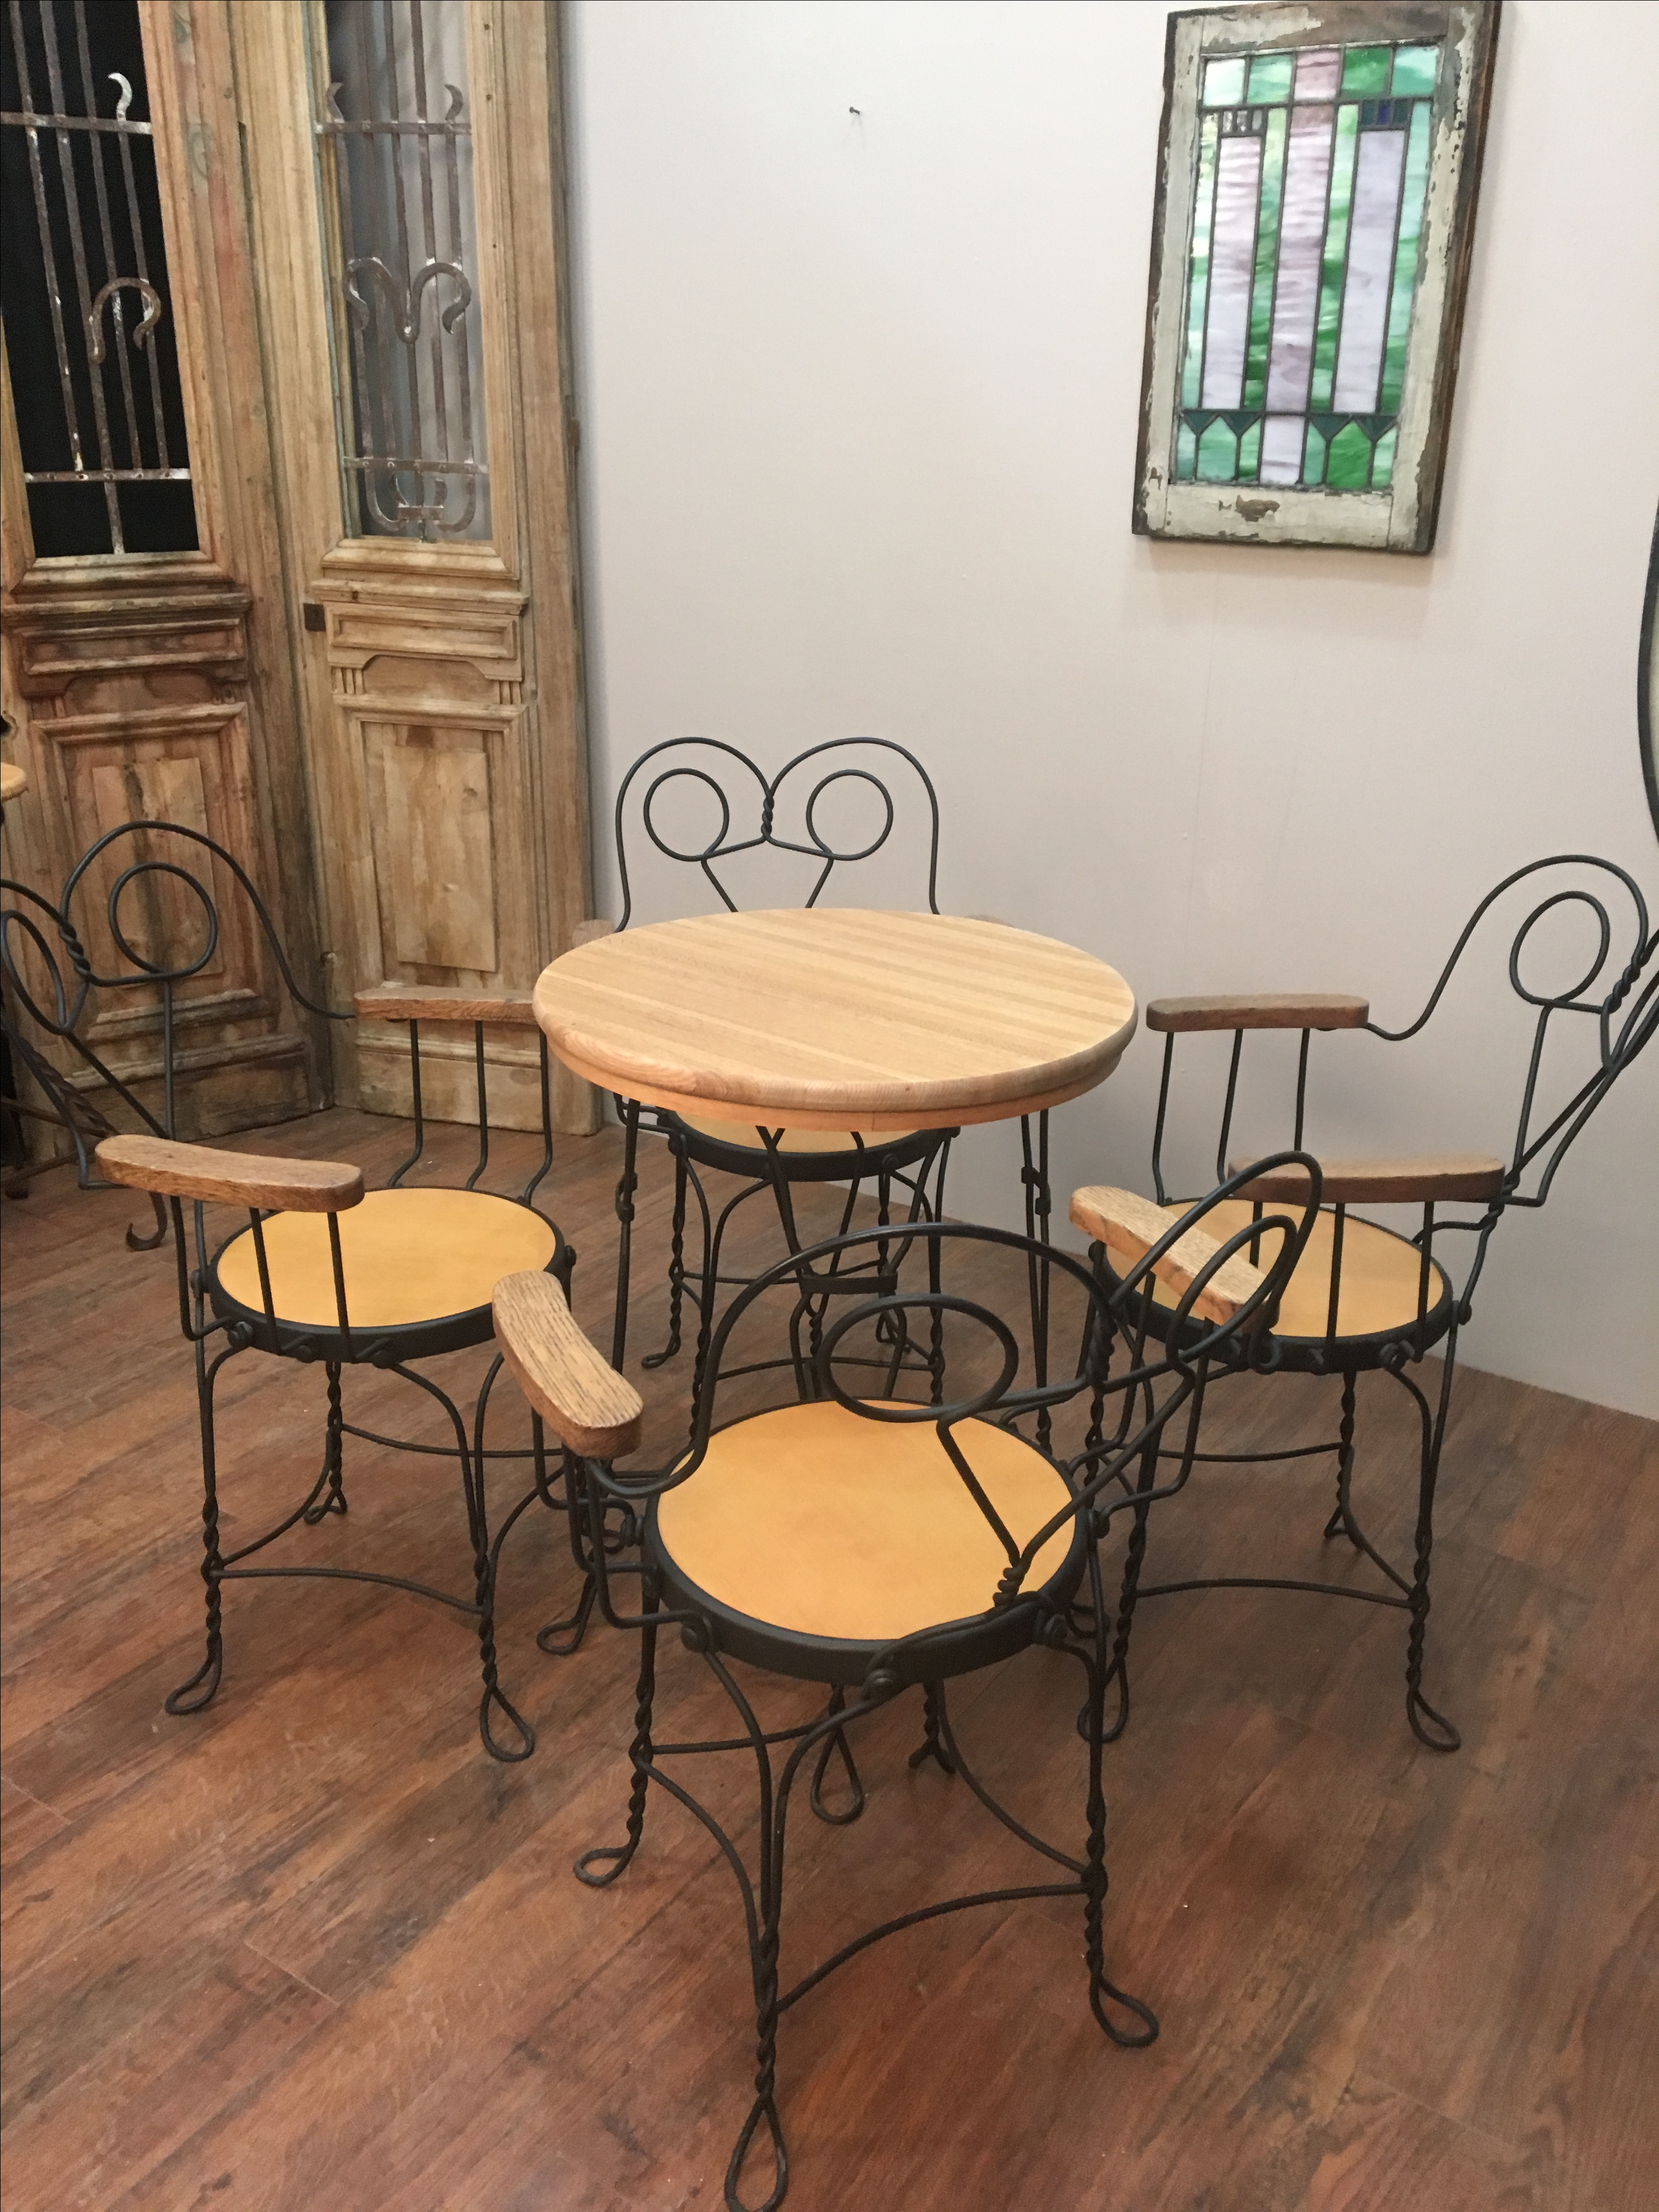 Lovely Vintage Ice Cream Parlor/cafe Set With Wire Legs And Oak Trim, Top